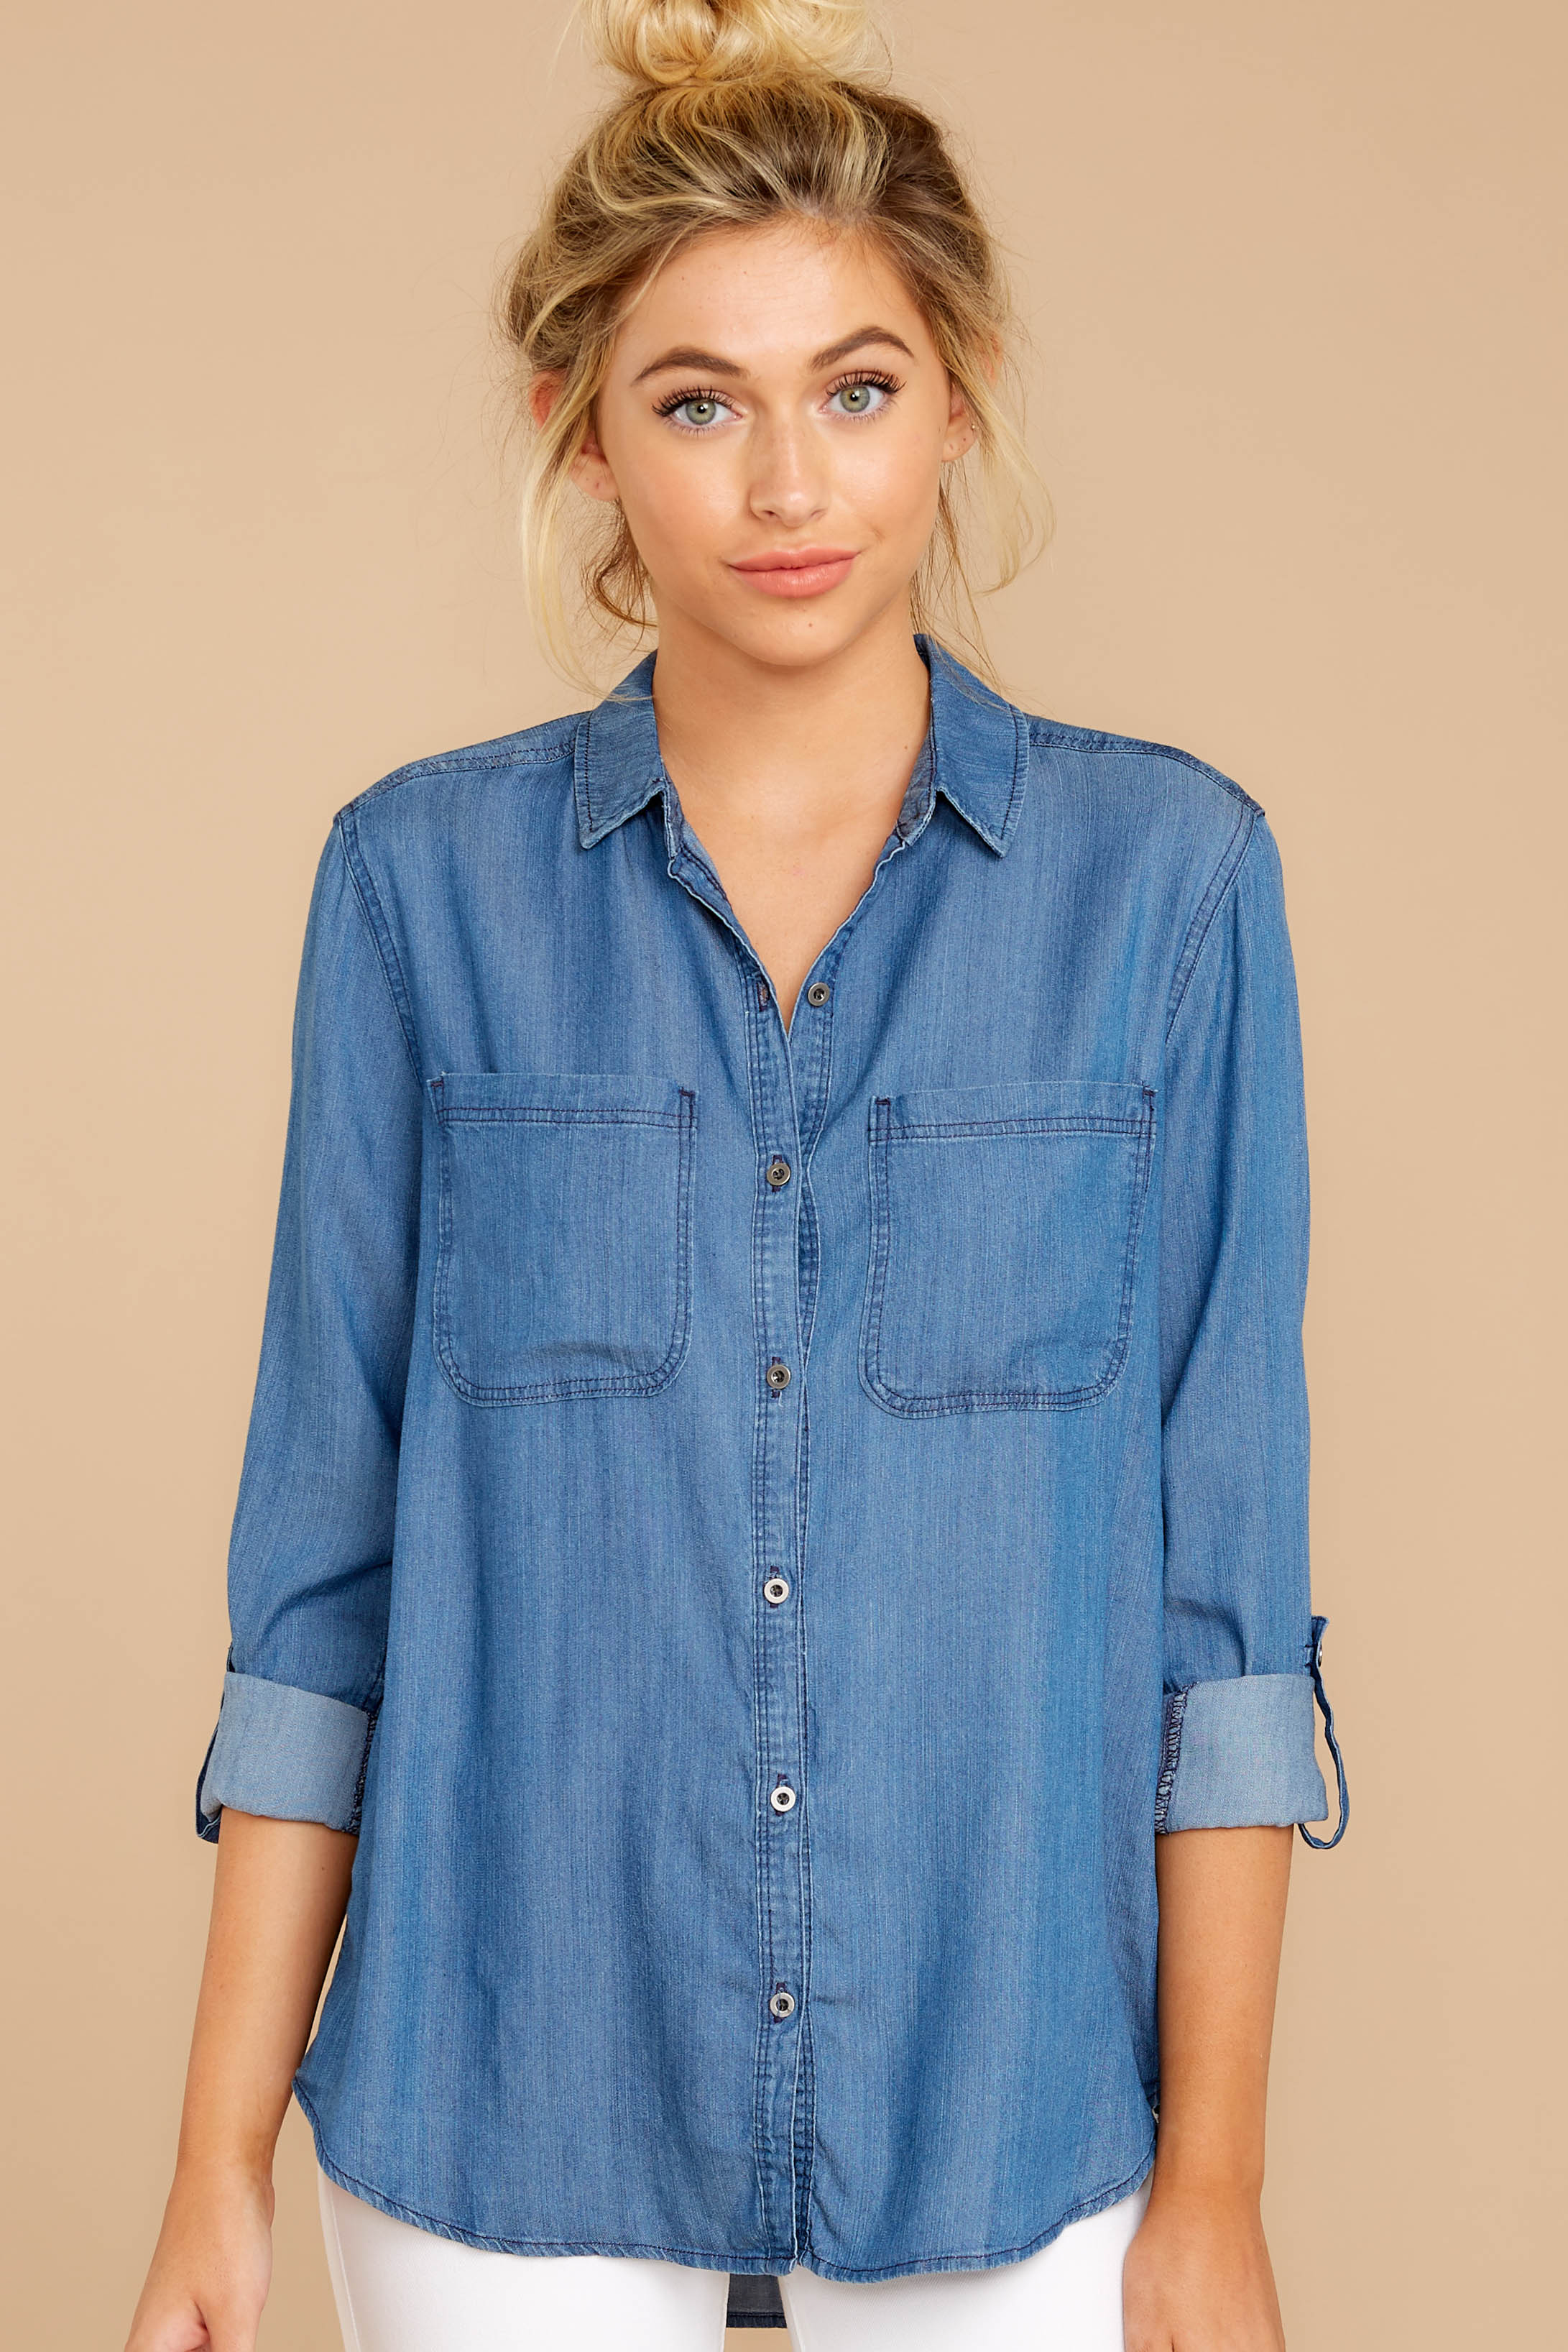 2 Wander Free Chambray Button Up Top at reddress.com